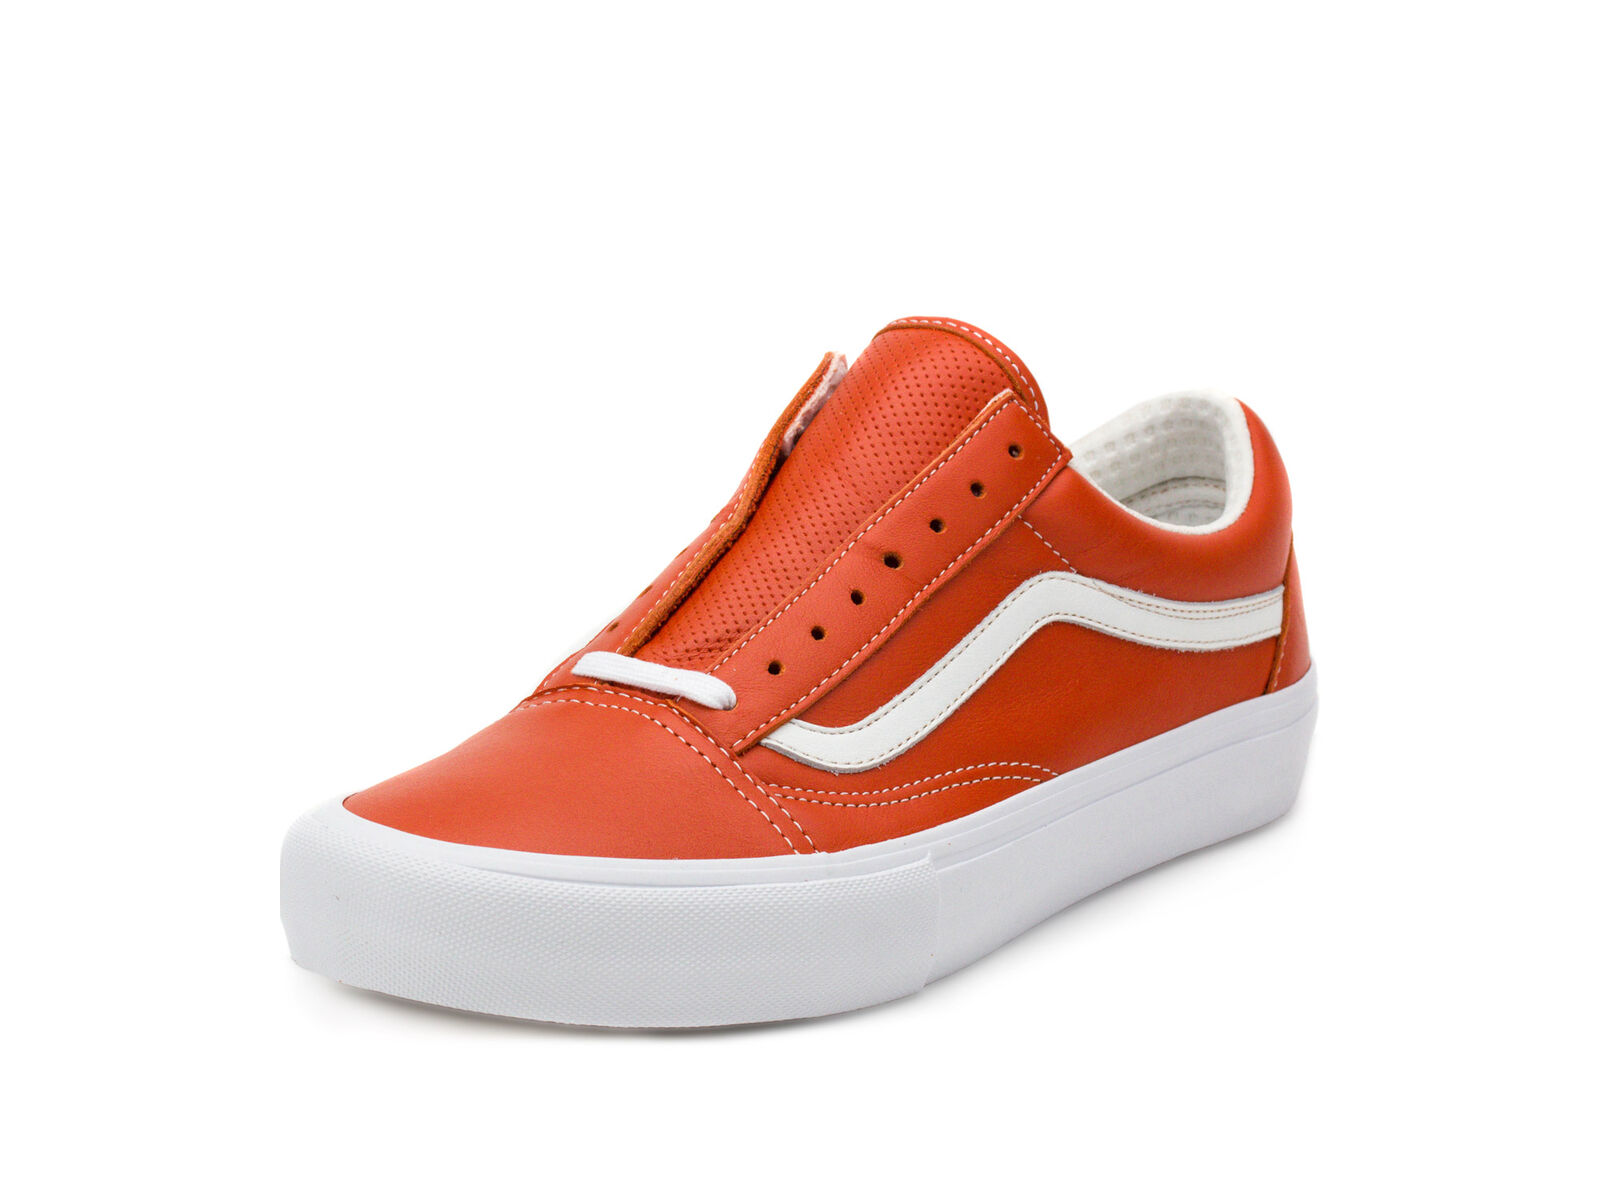 Vans Mens Old Skool VLT LX Italian Leather Mango VN0A3MUWR2V